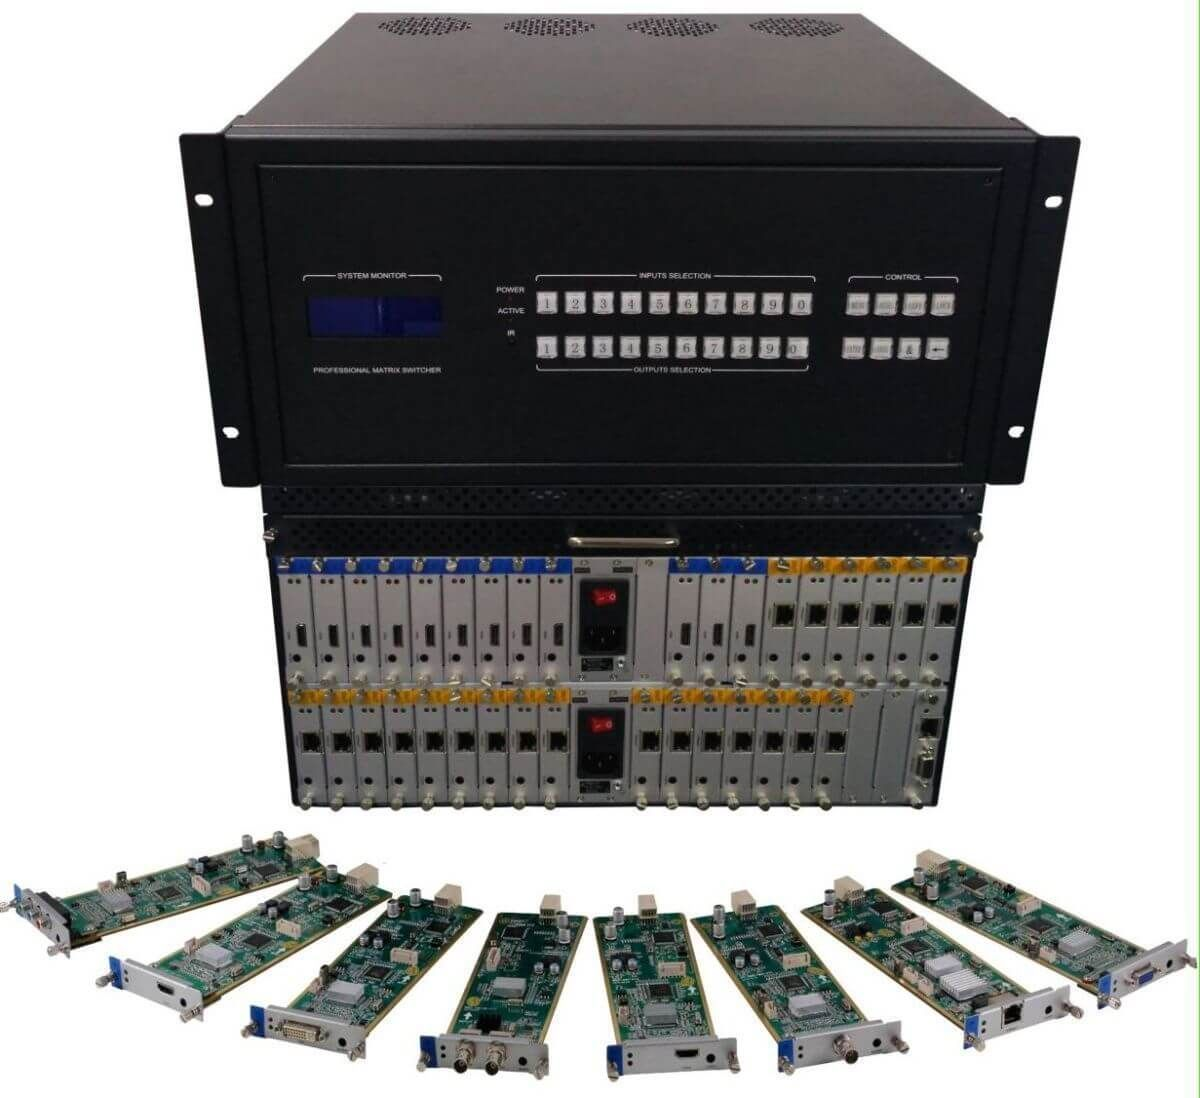 8x16 HDMI Matrix Switcher w/Video Wall Processor, 100ms Switching, Scaling & Separate Audio in 36x36 Chassis